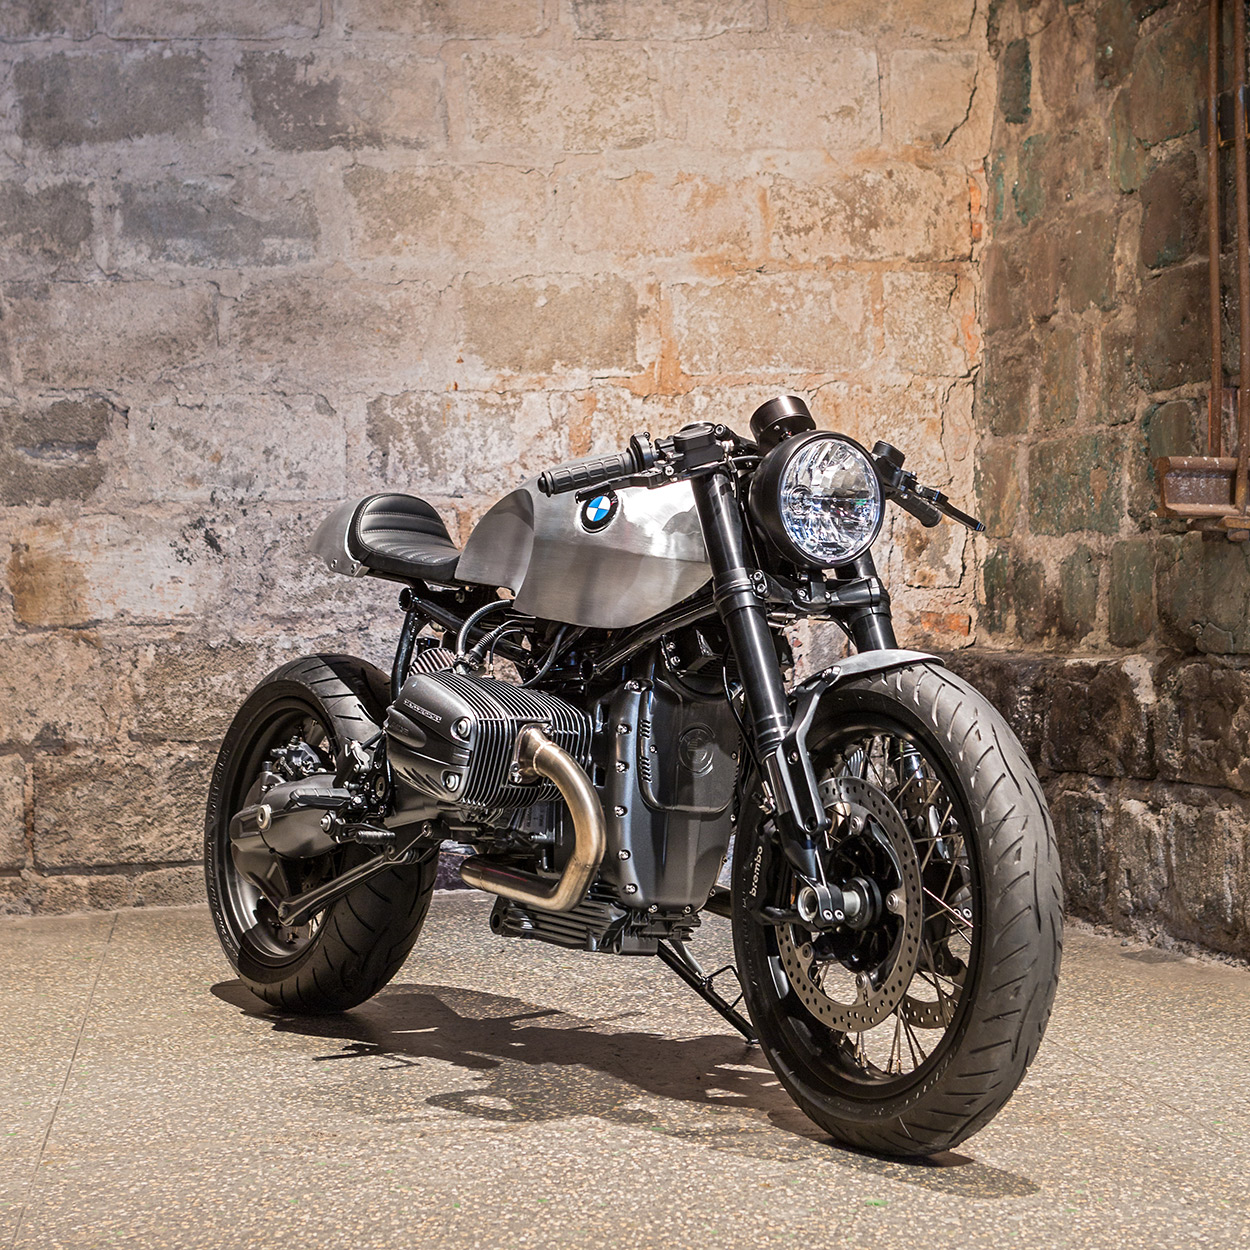 rise of the oilheads: an ice-cool bmw r1150 cafe racer | bike exif